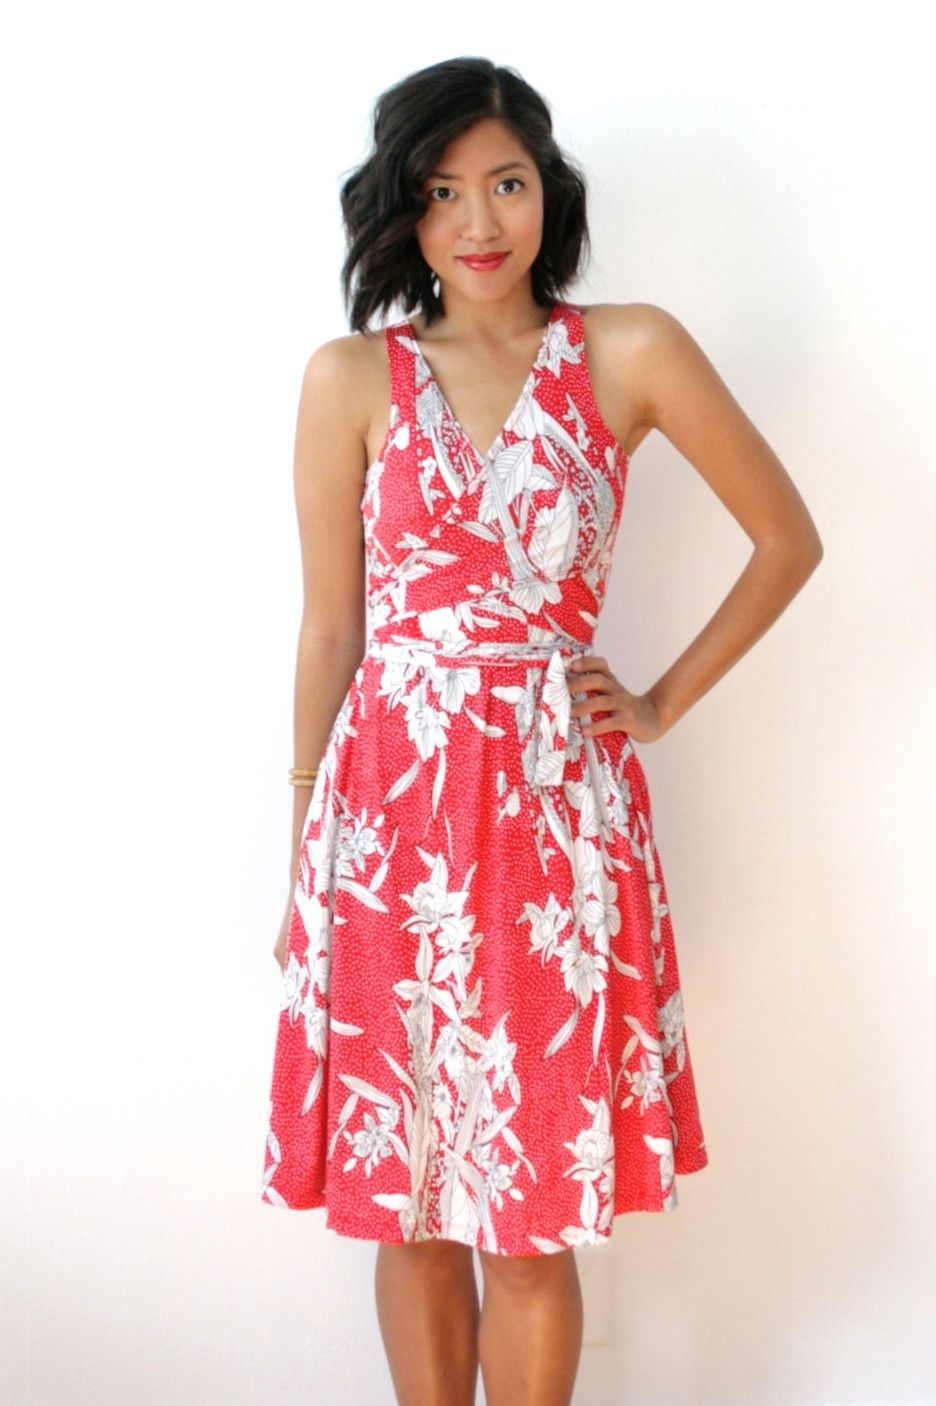 Red floral flared wrap dress vneck tank dress flared wrap dress red floral flared wrap dress vneck tank dress flared wrap dress with wrap ties full circle skirtsmaternity ombrellifo Gallery